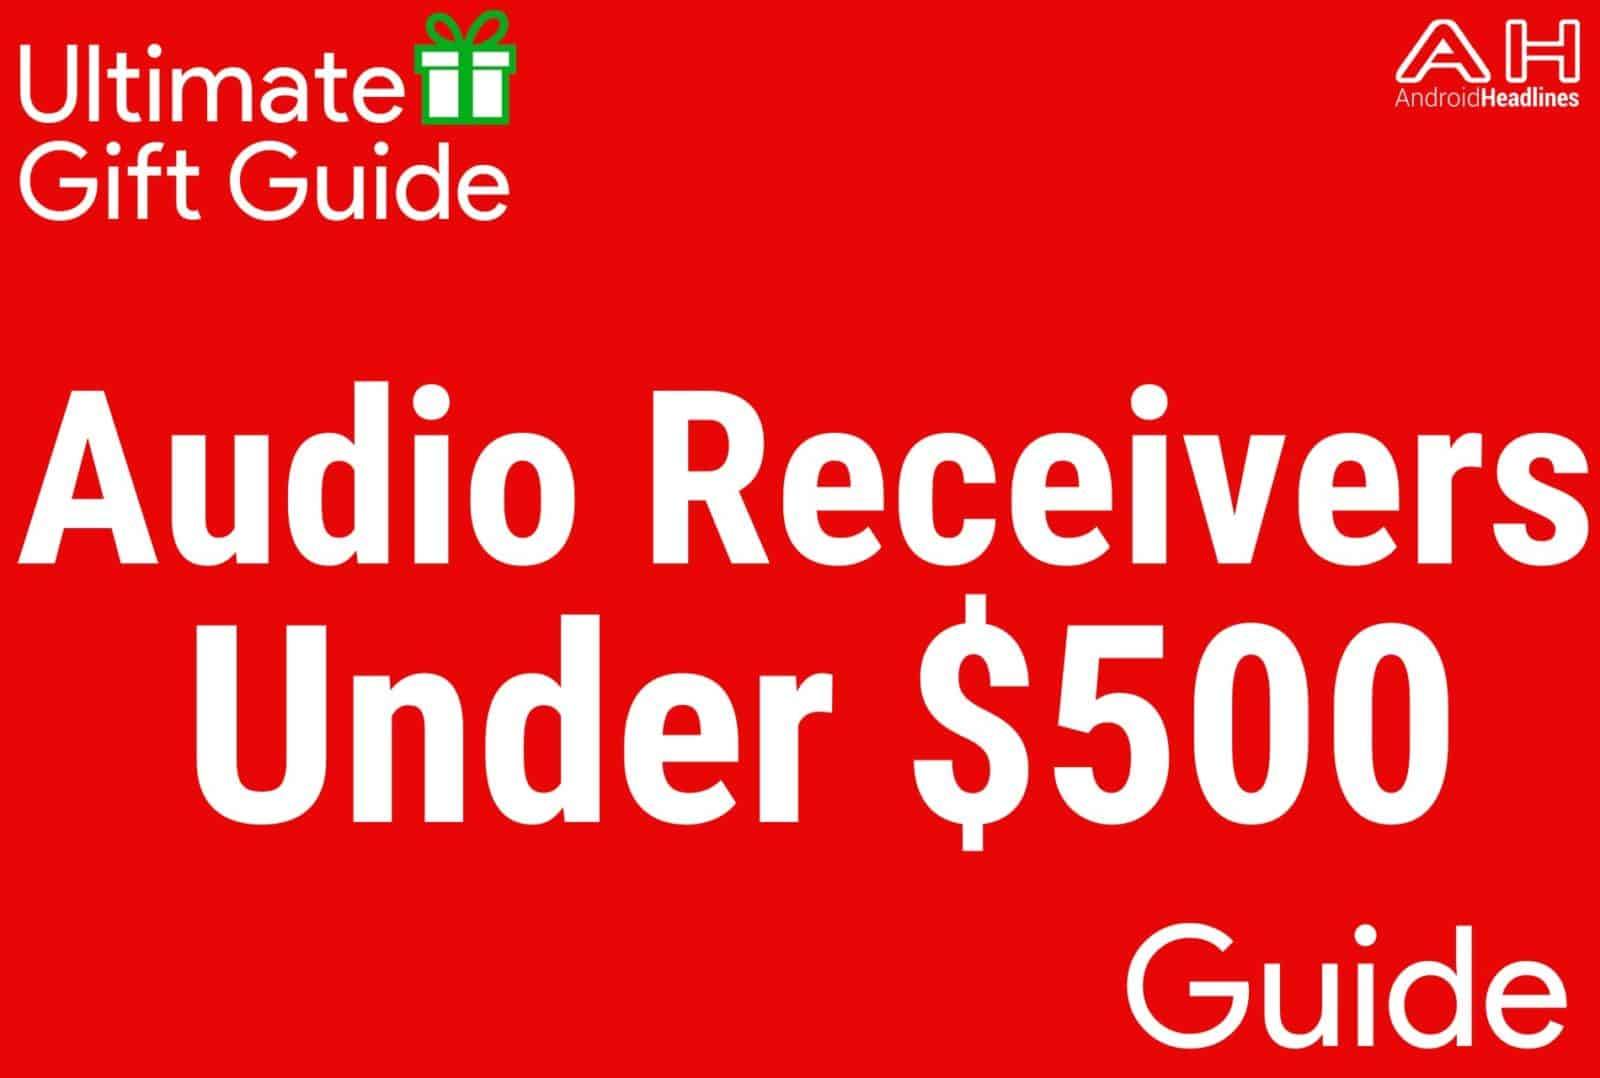 Audio Receivers Under $500 - Gift Guide 2015